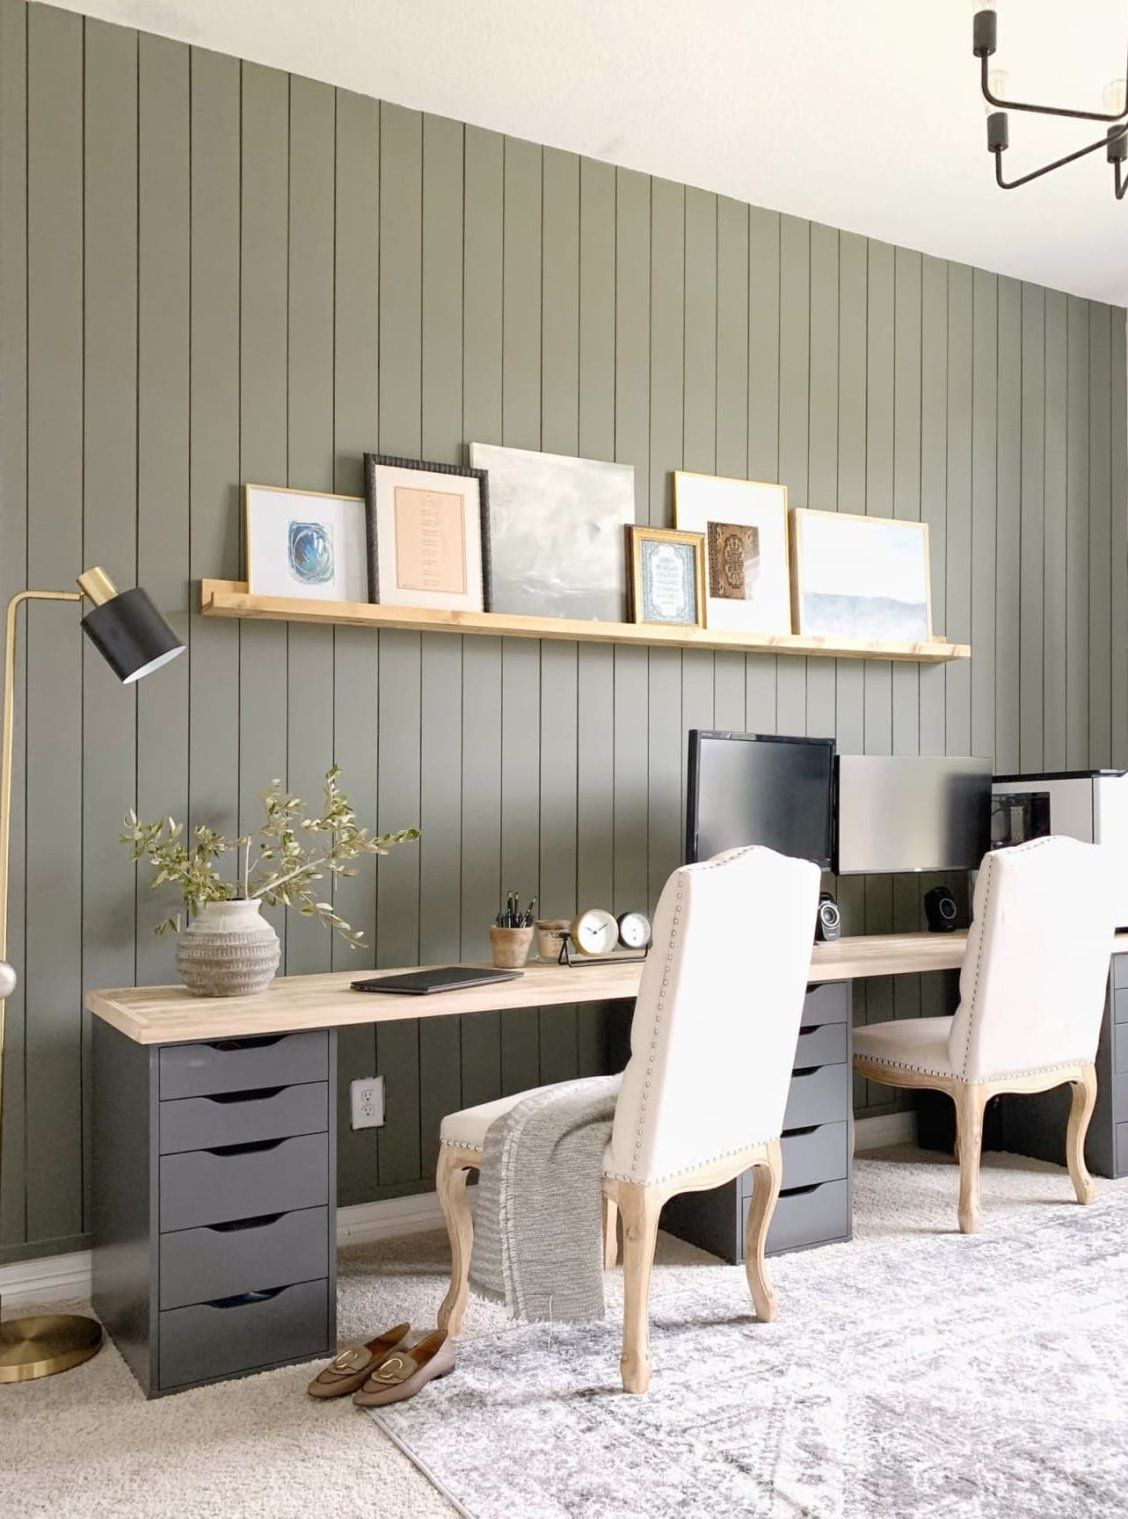 Before And After A Smart Ikea Hack Makes This Home Office Extra